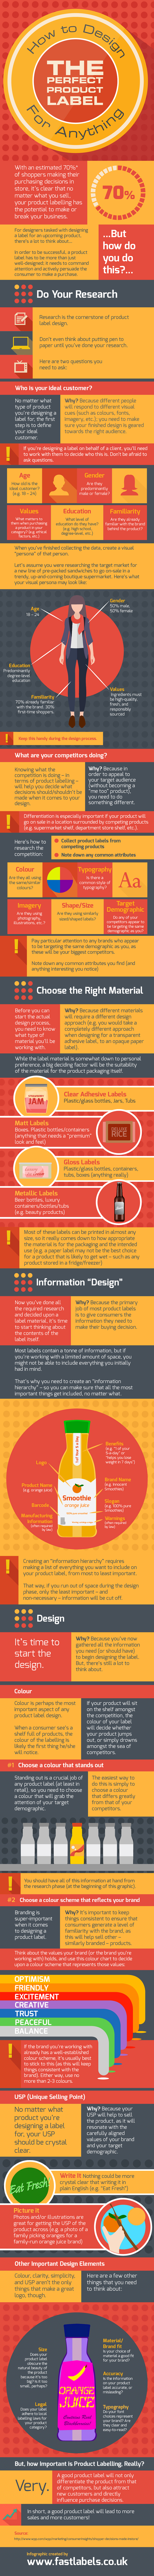 3430-PERFECT_LABEL_INFOGRAPHIC_03.jpg